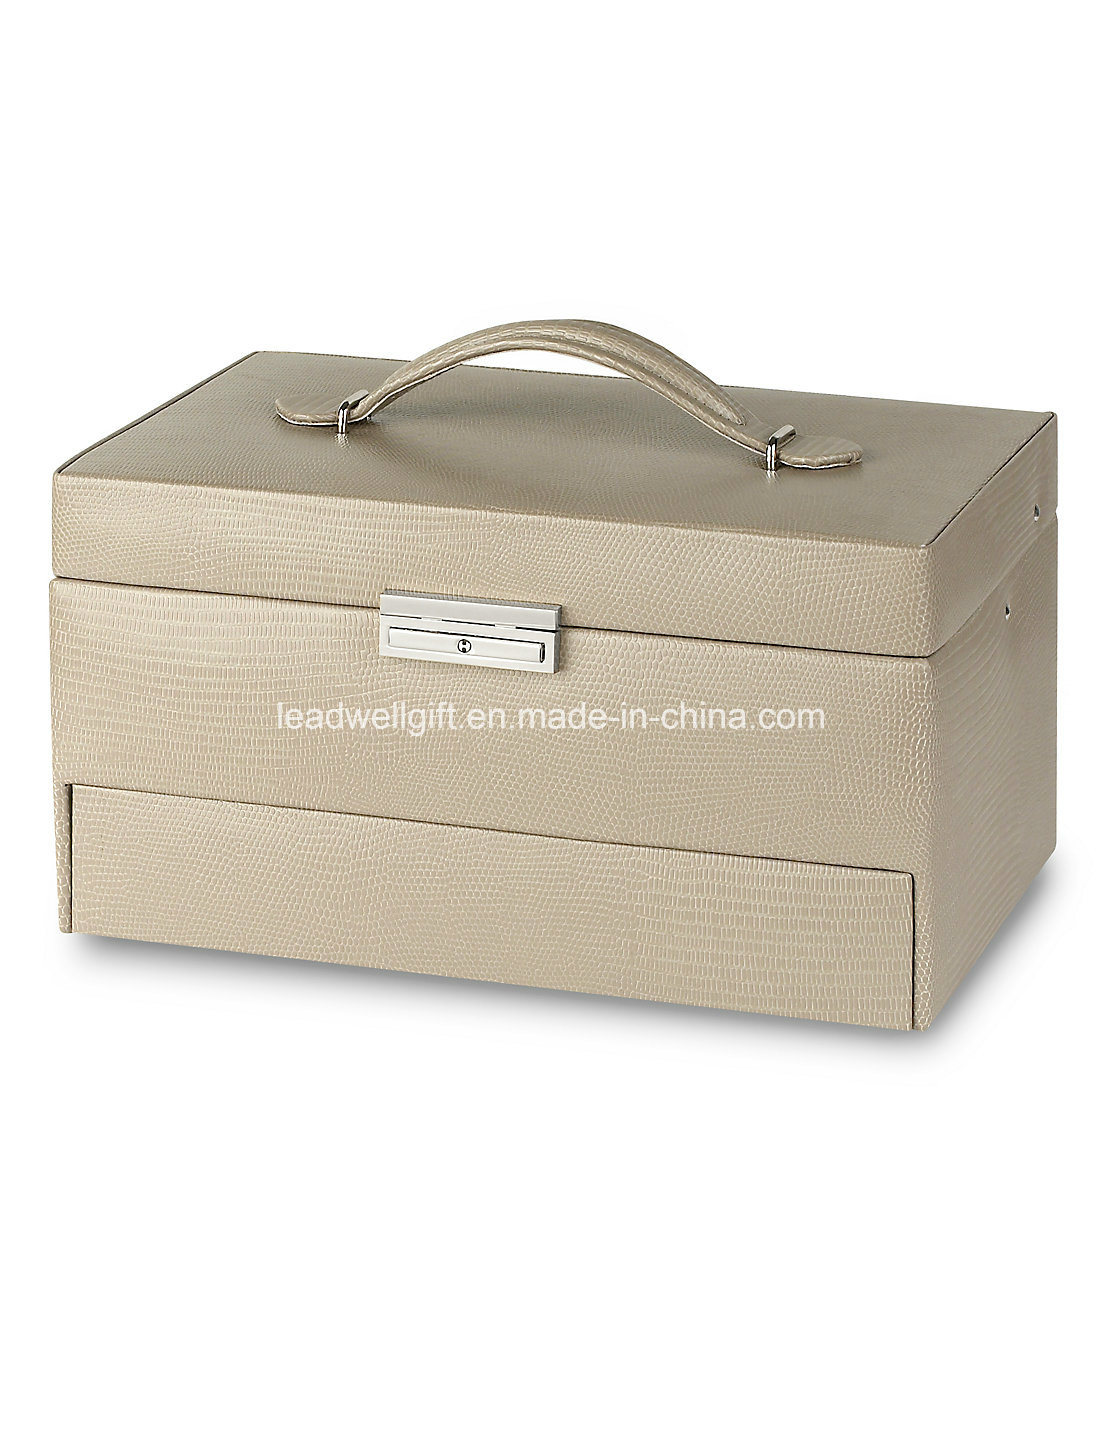 Large Rectangular Jewelry Box Storage Case